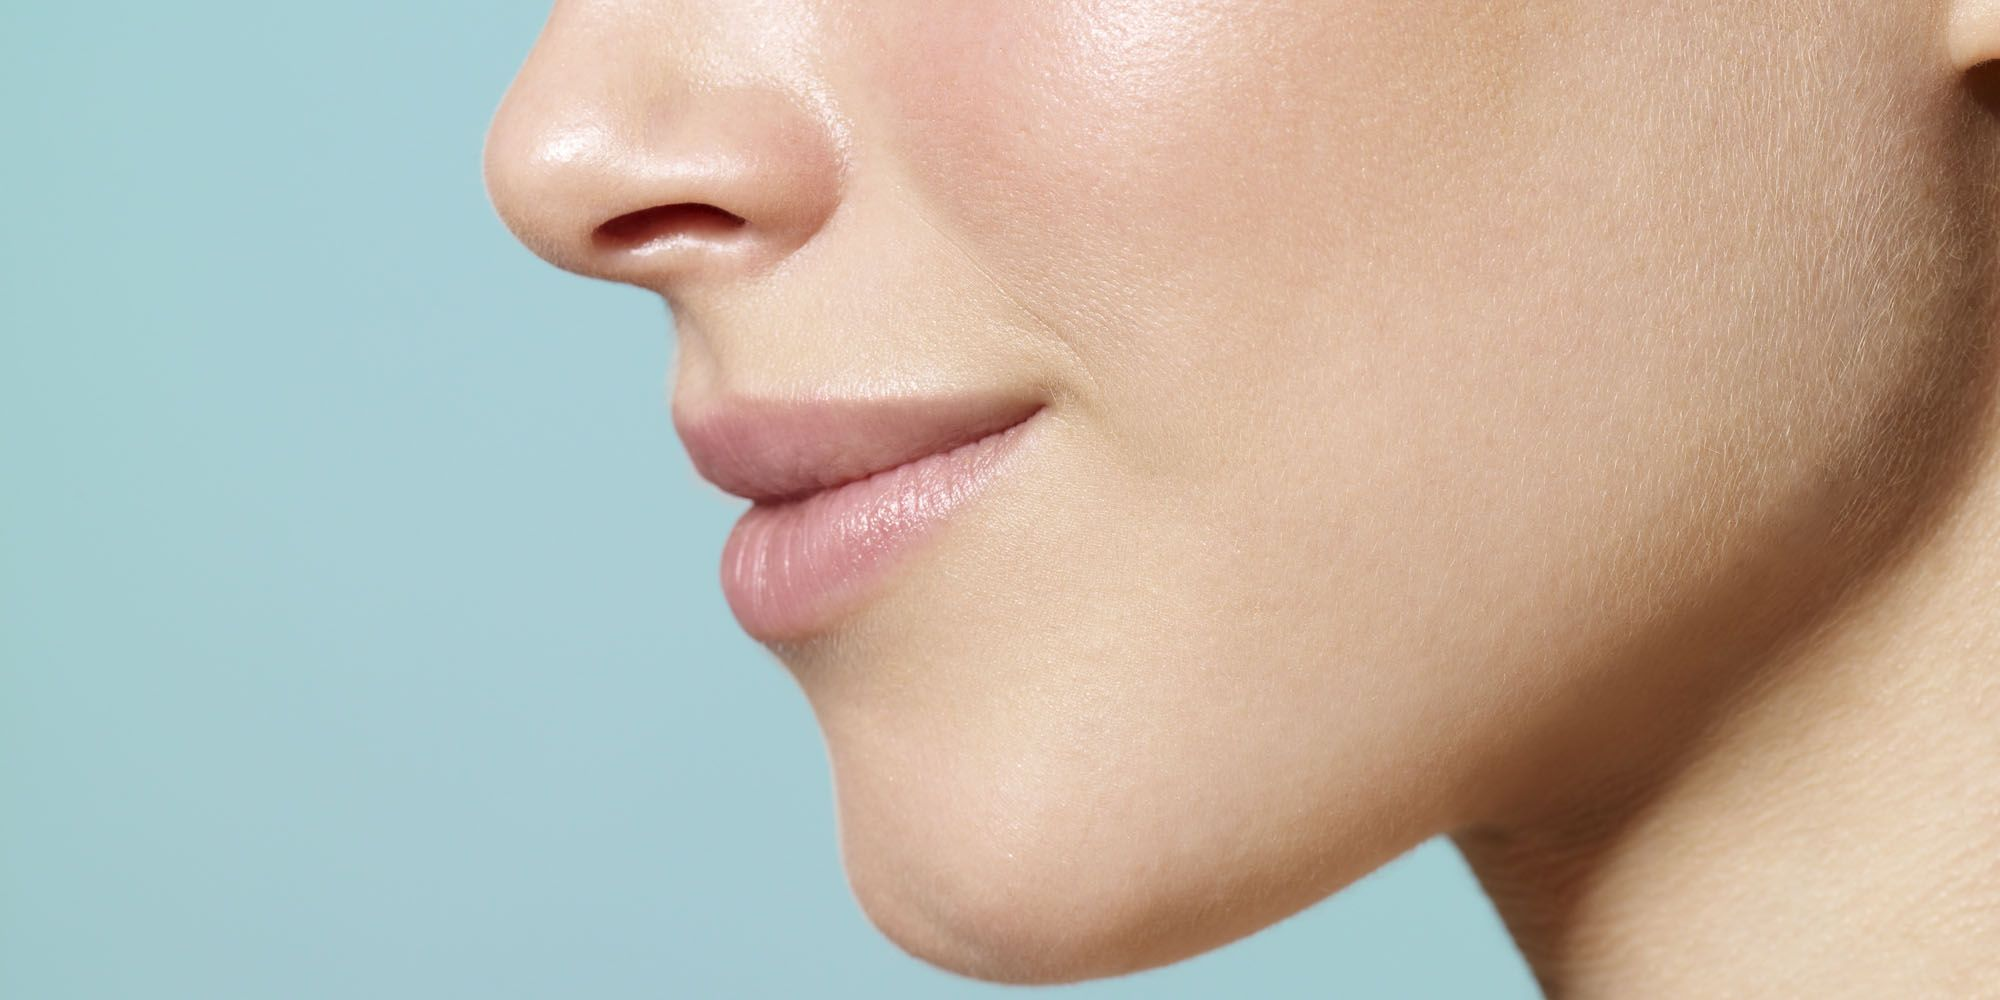 11 Quick and Easy Ways to Make Your Pores Look Smaller